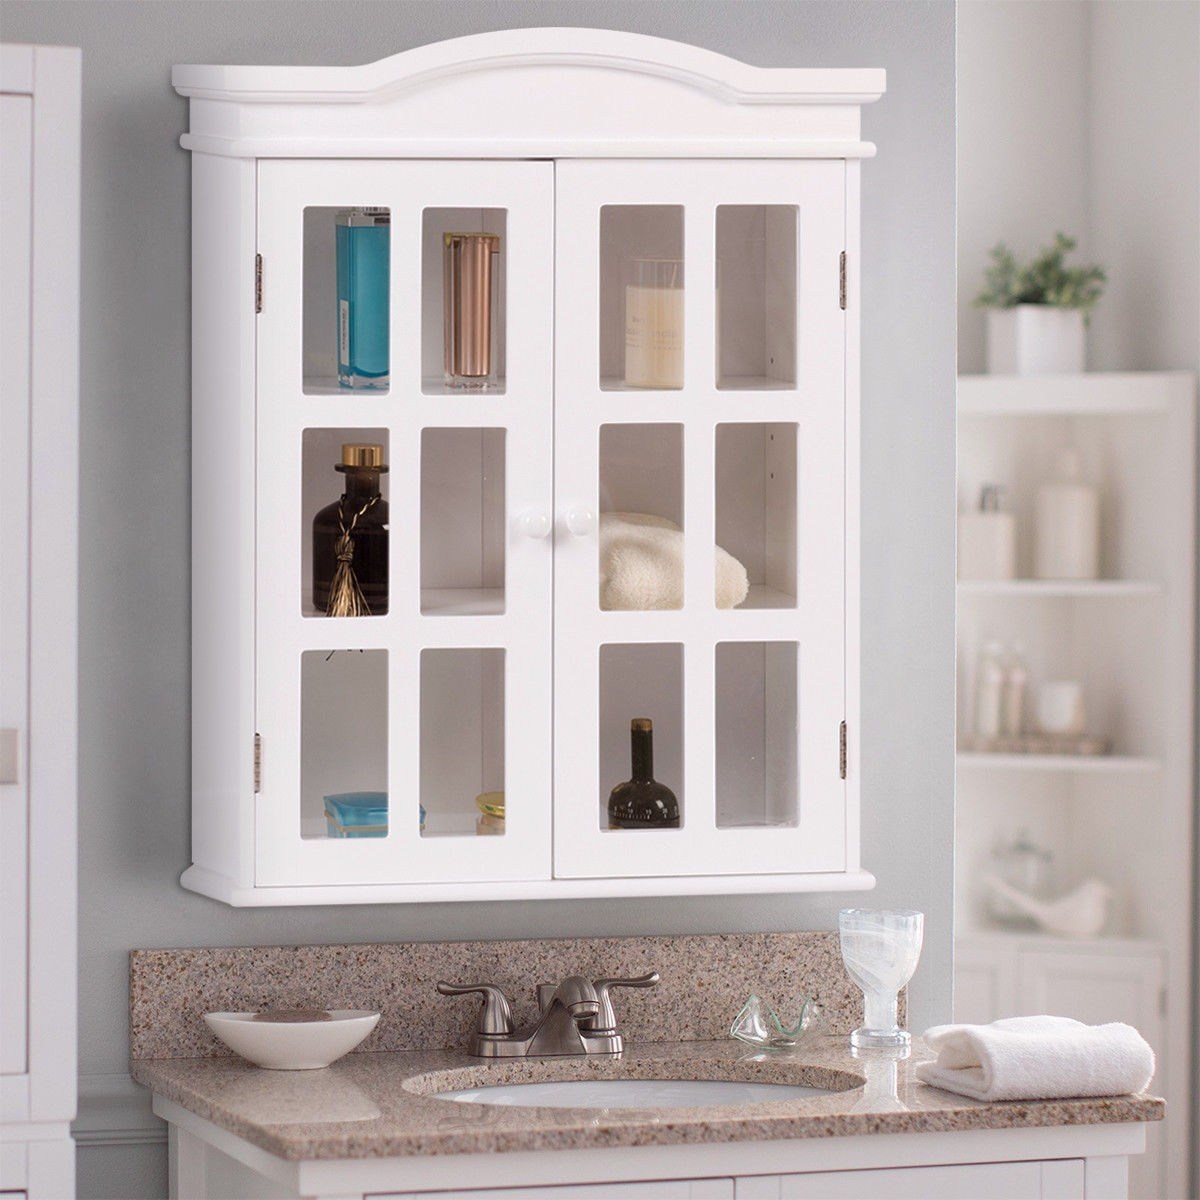 Wall-Mount Bathroom Double Doors Shelved Storage Cabinet – By Choice ...